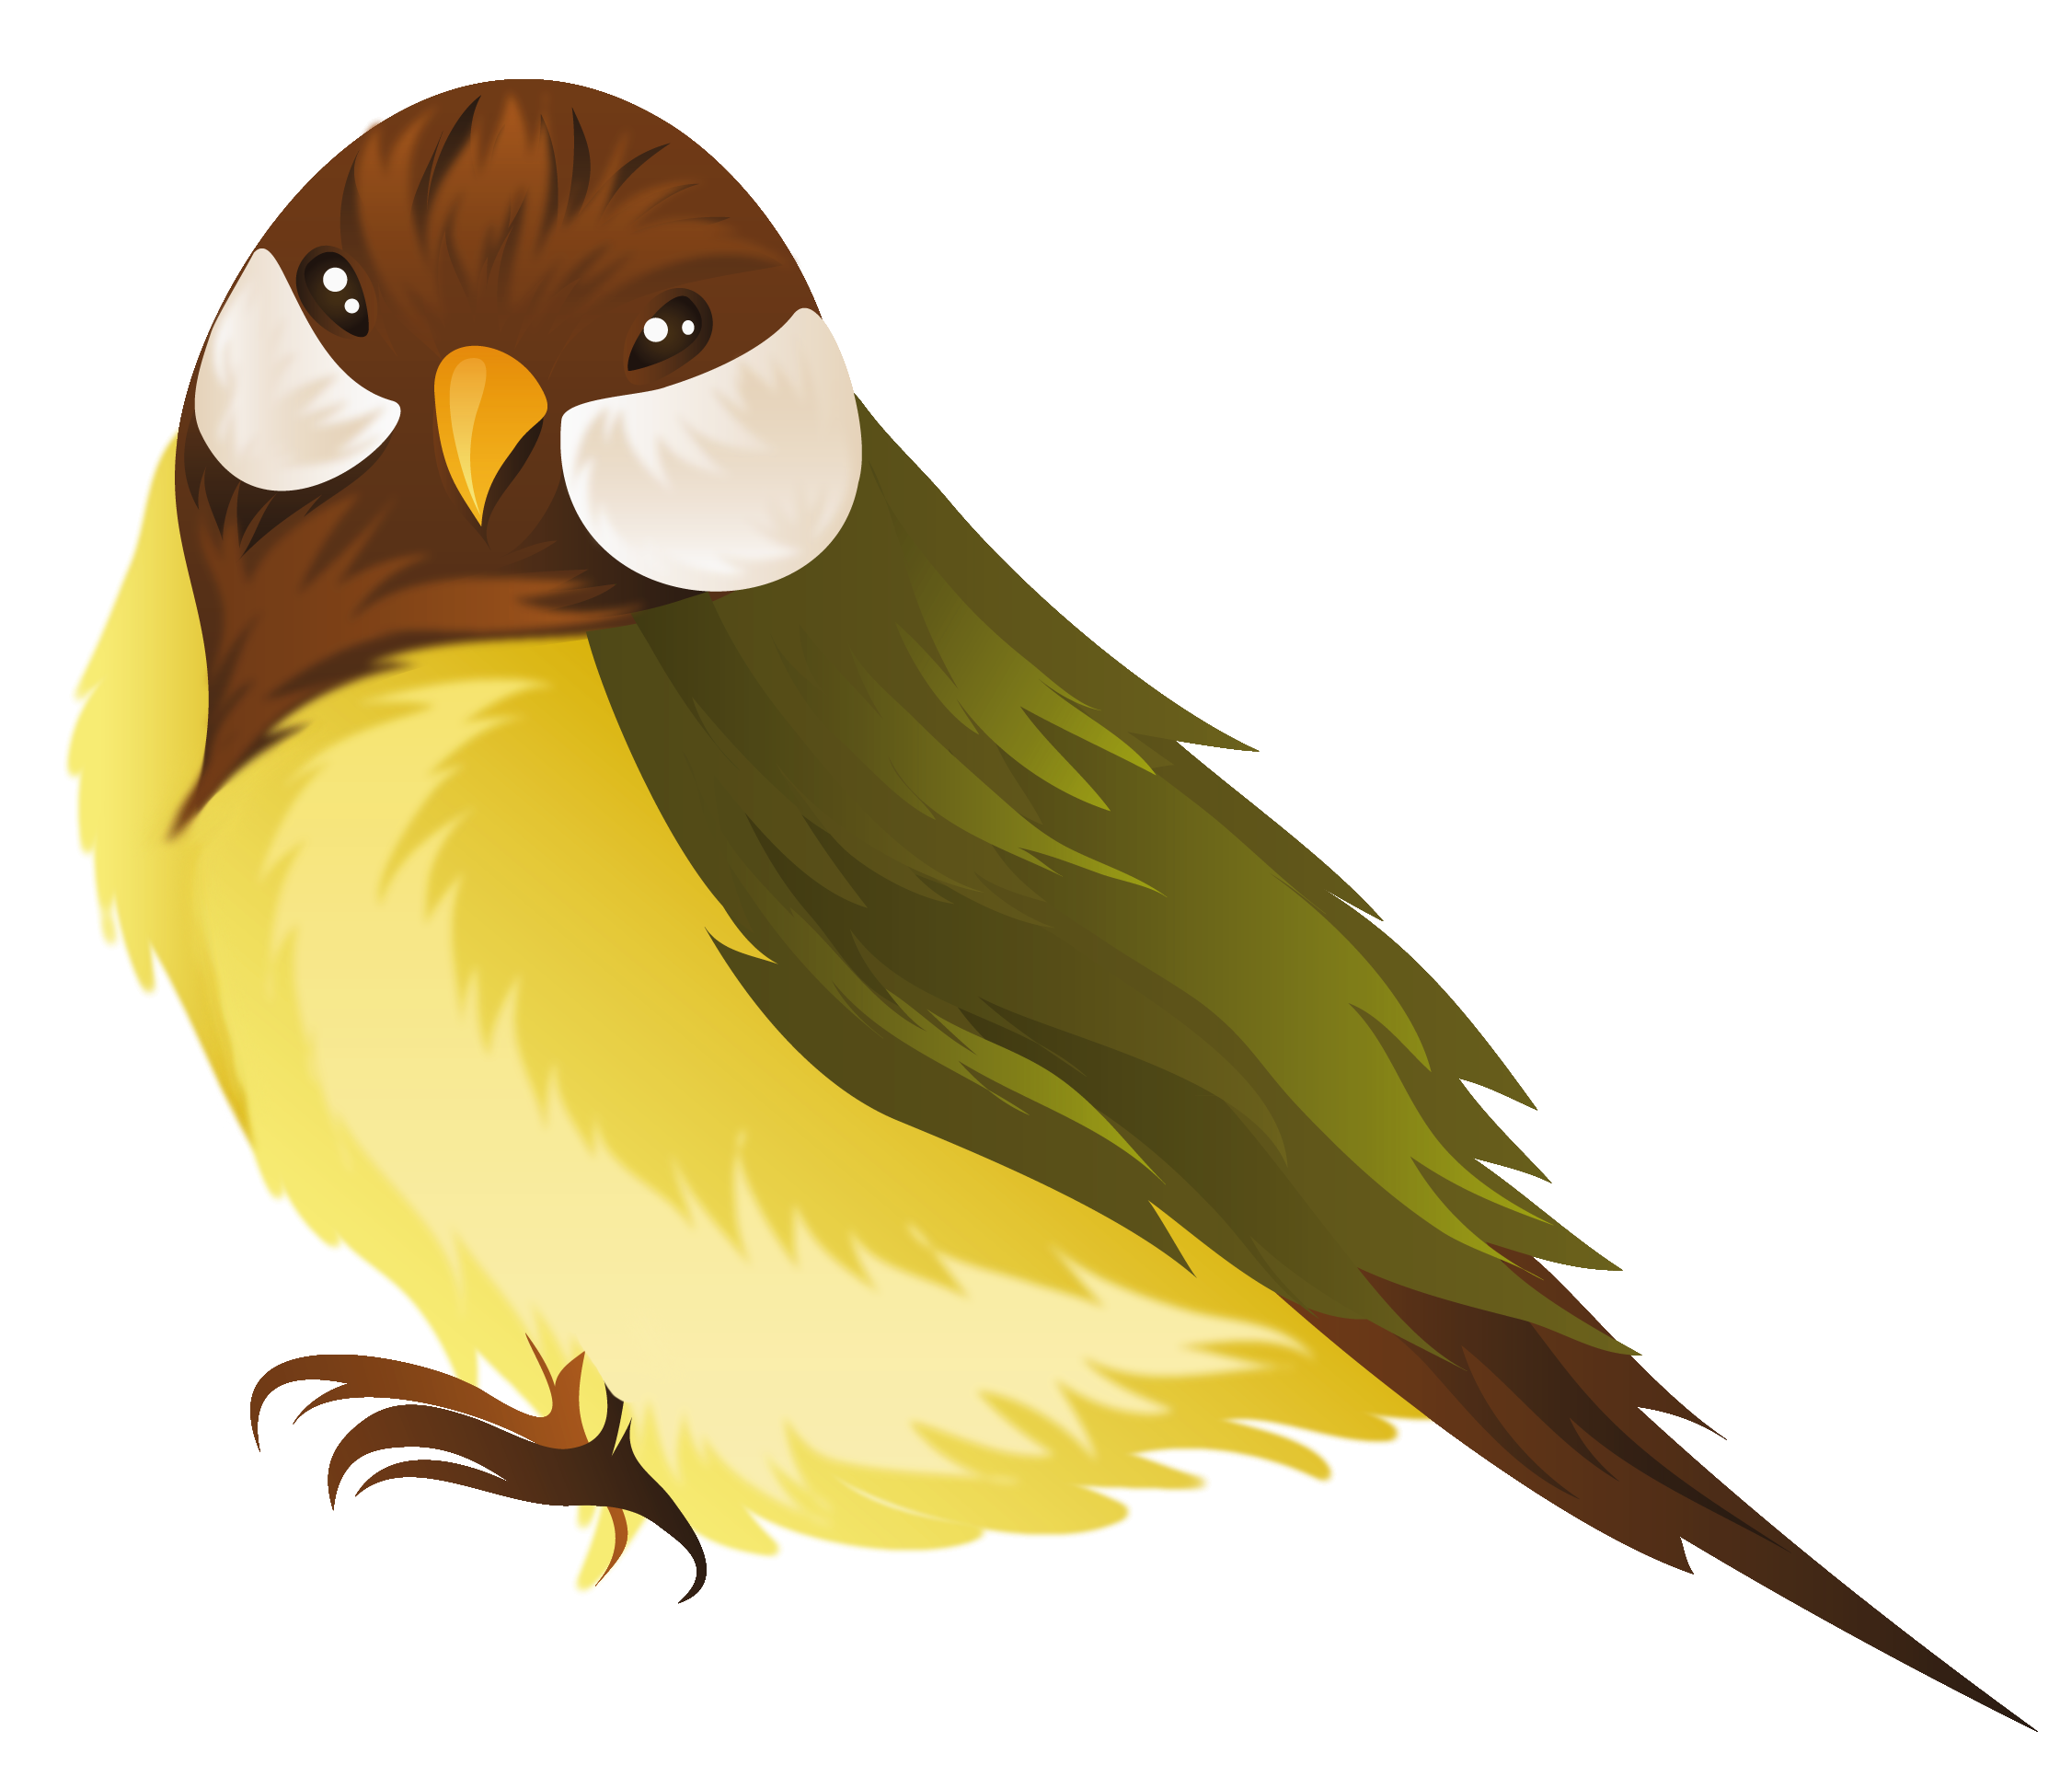 clip art royalty free library Png image gallery yopriceville. Bird clipart.